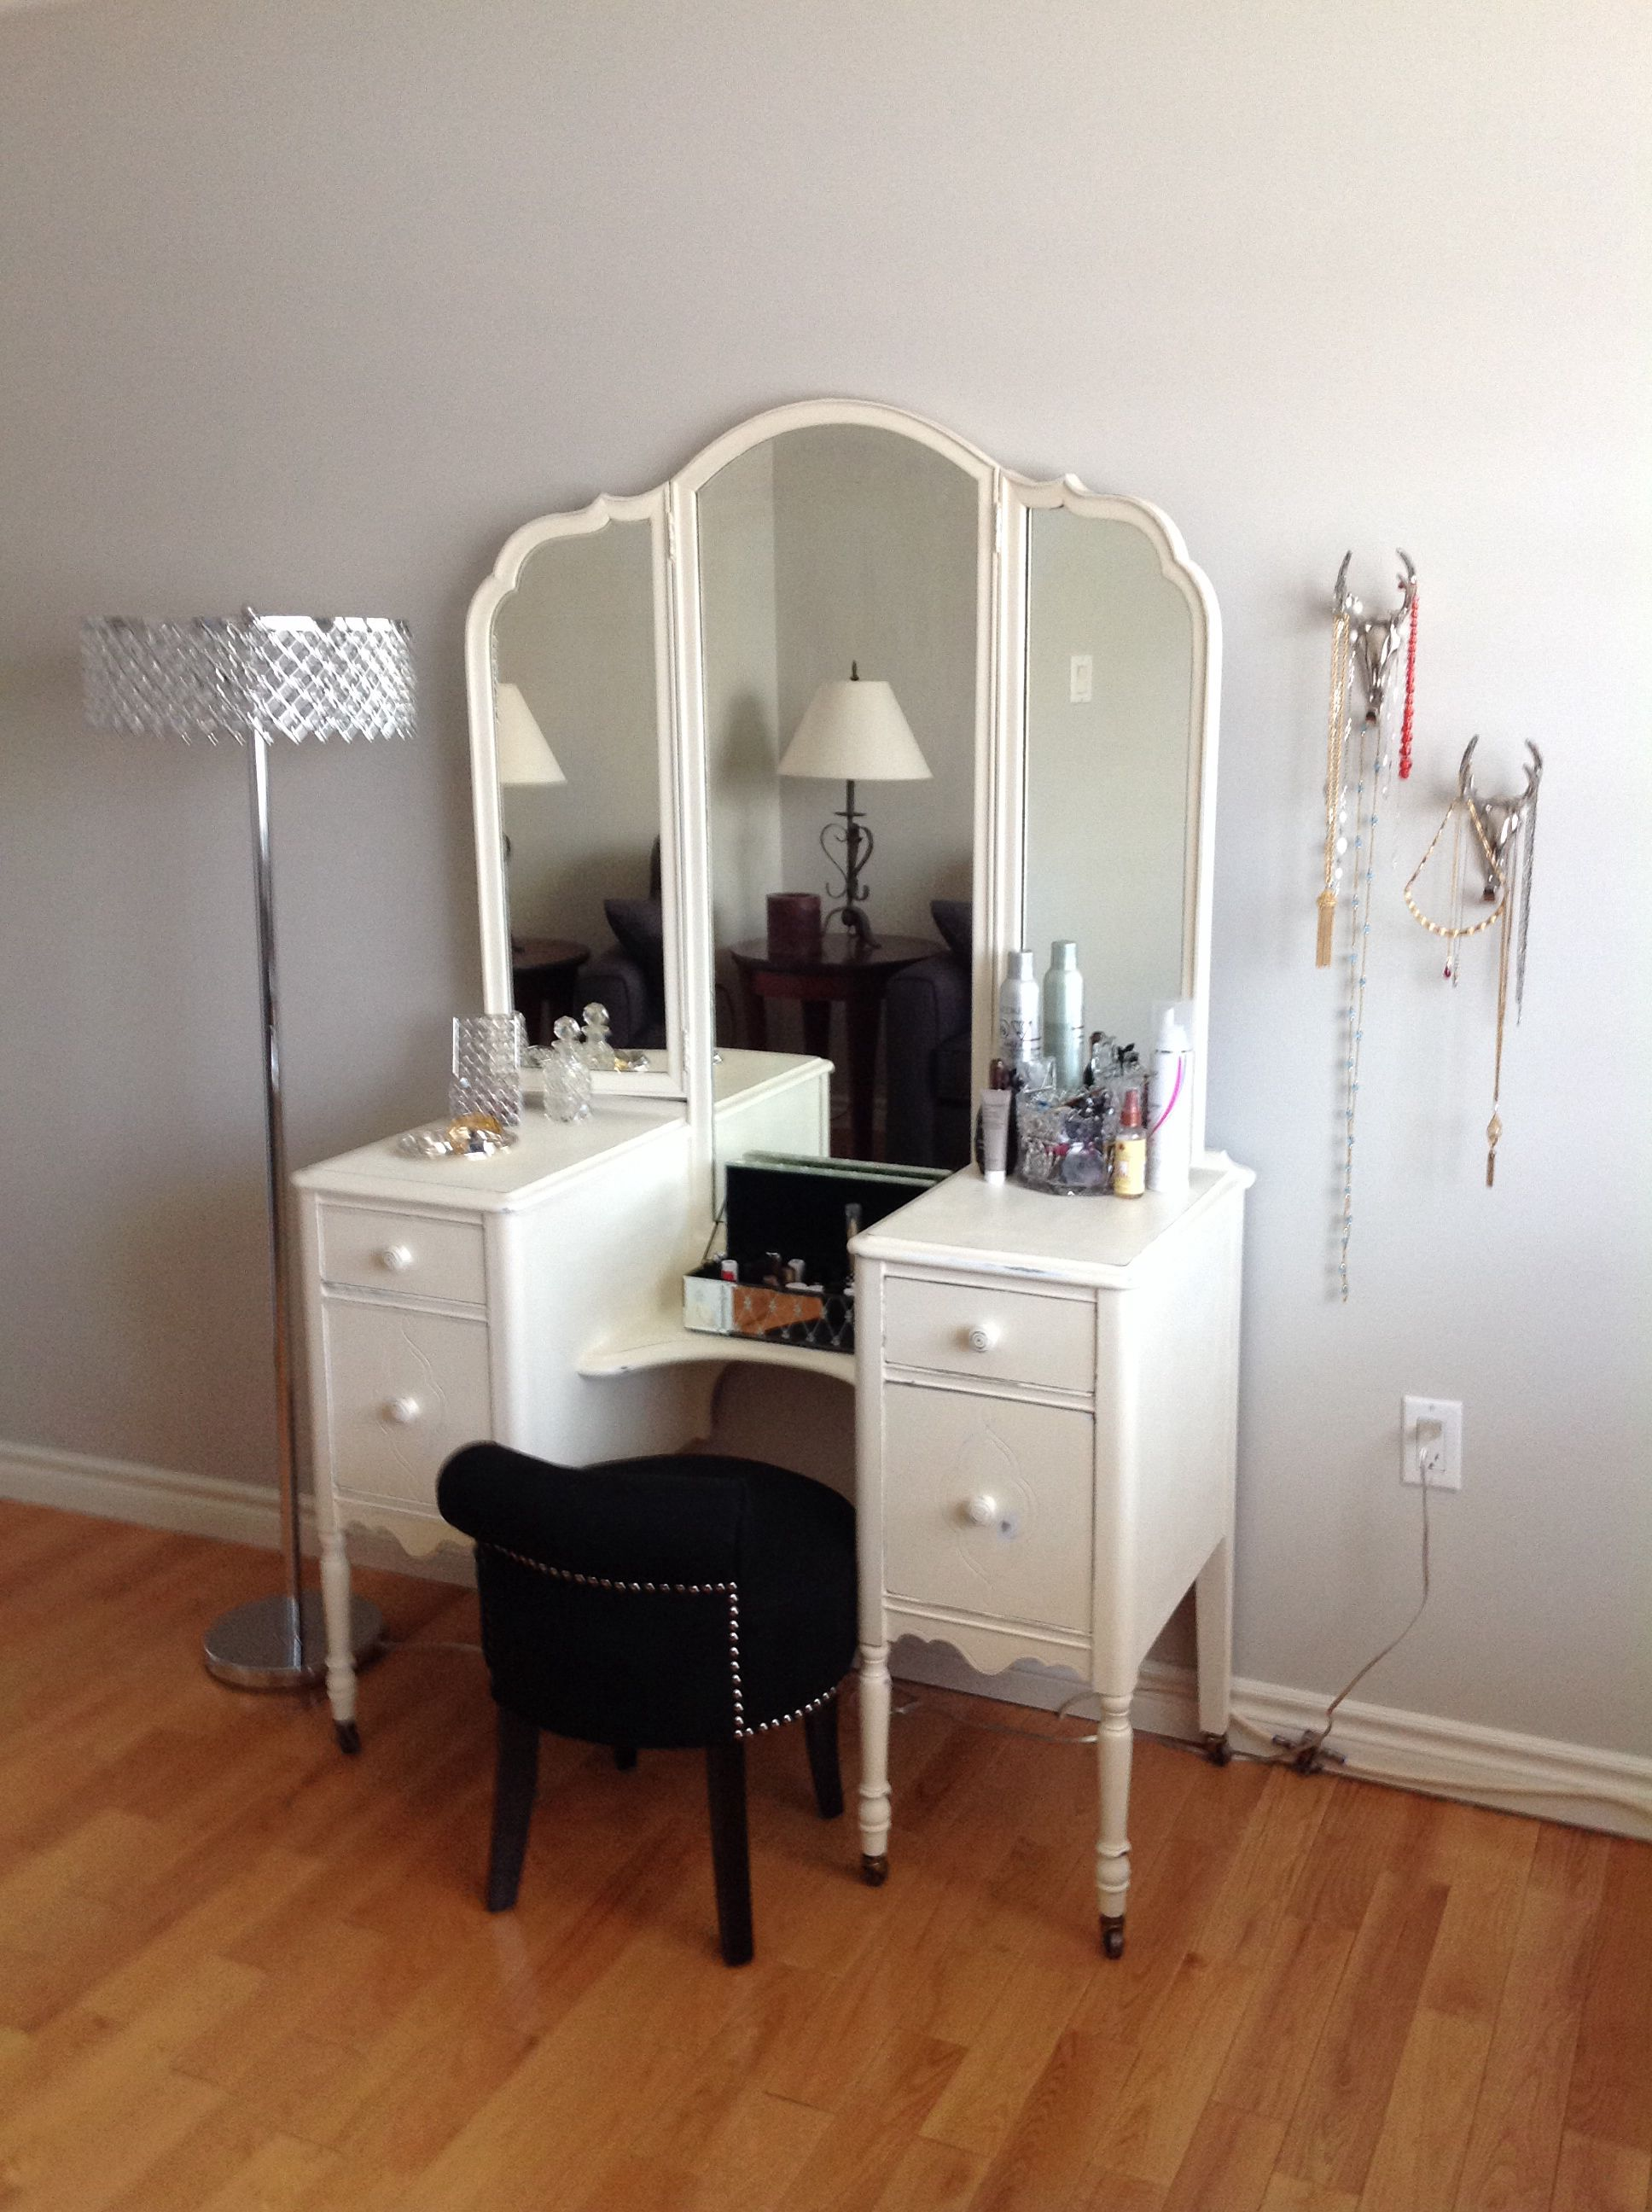 Antique Refinished Vanity | Refinished vanity, Home, Home ...